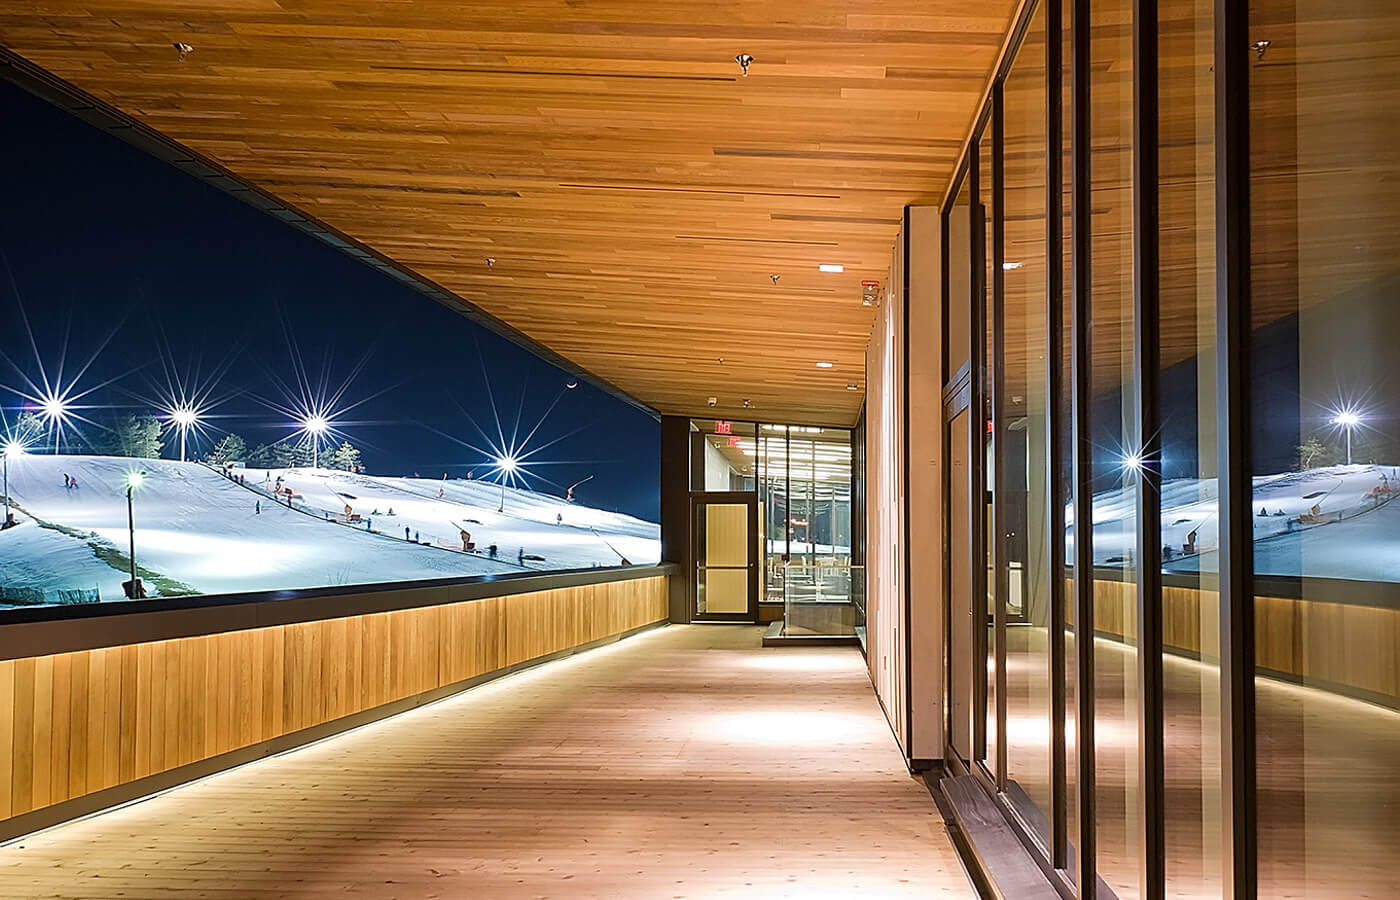 Chinguacousy Park Pavilion Meeting Room